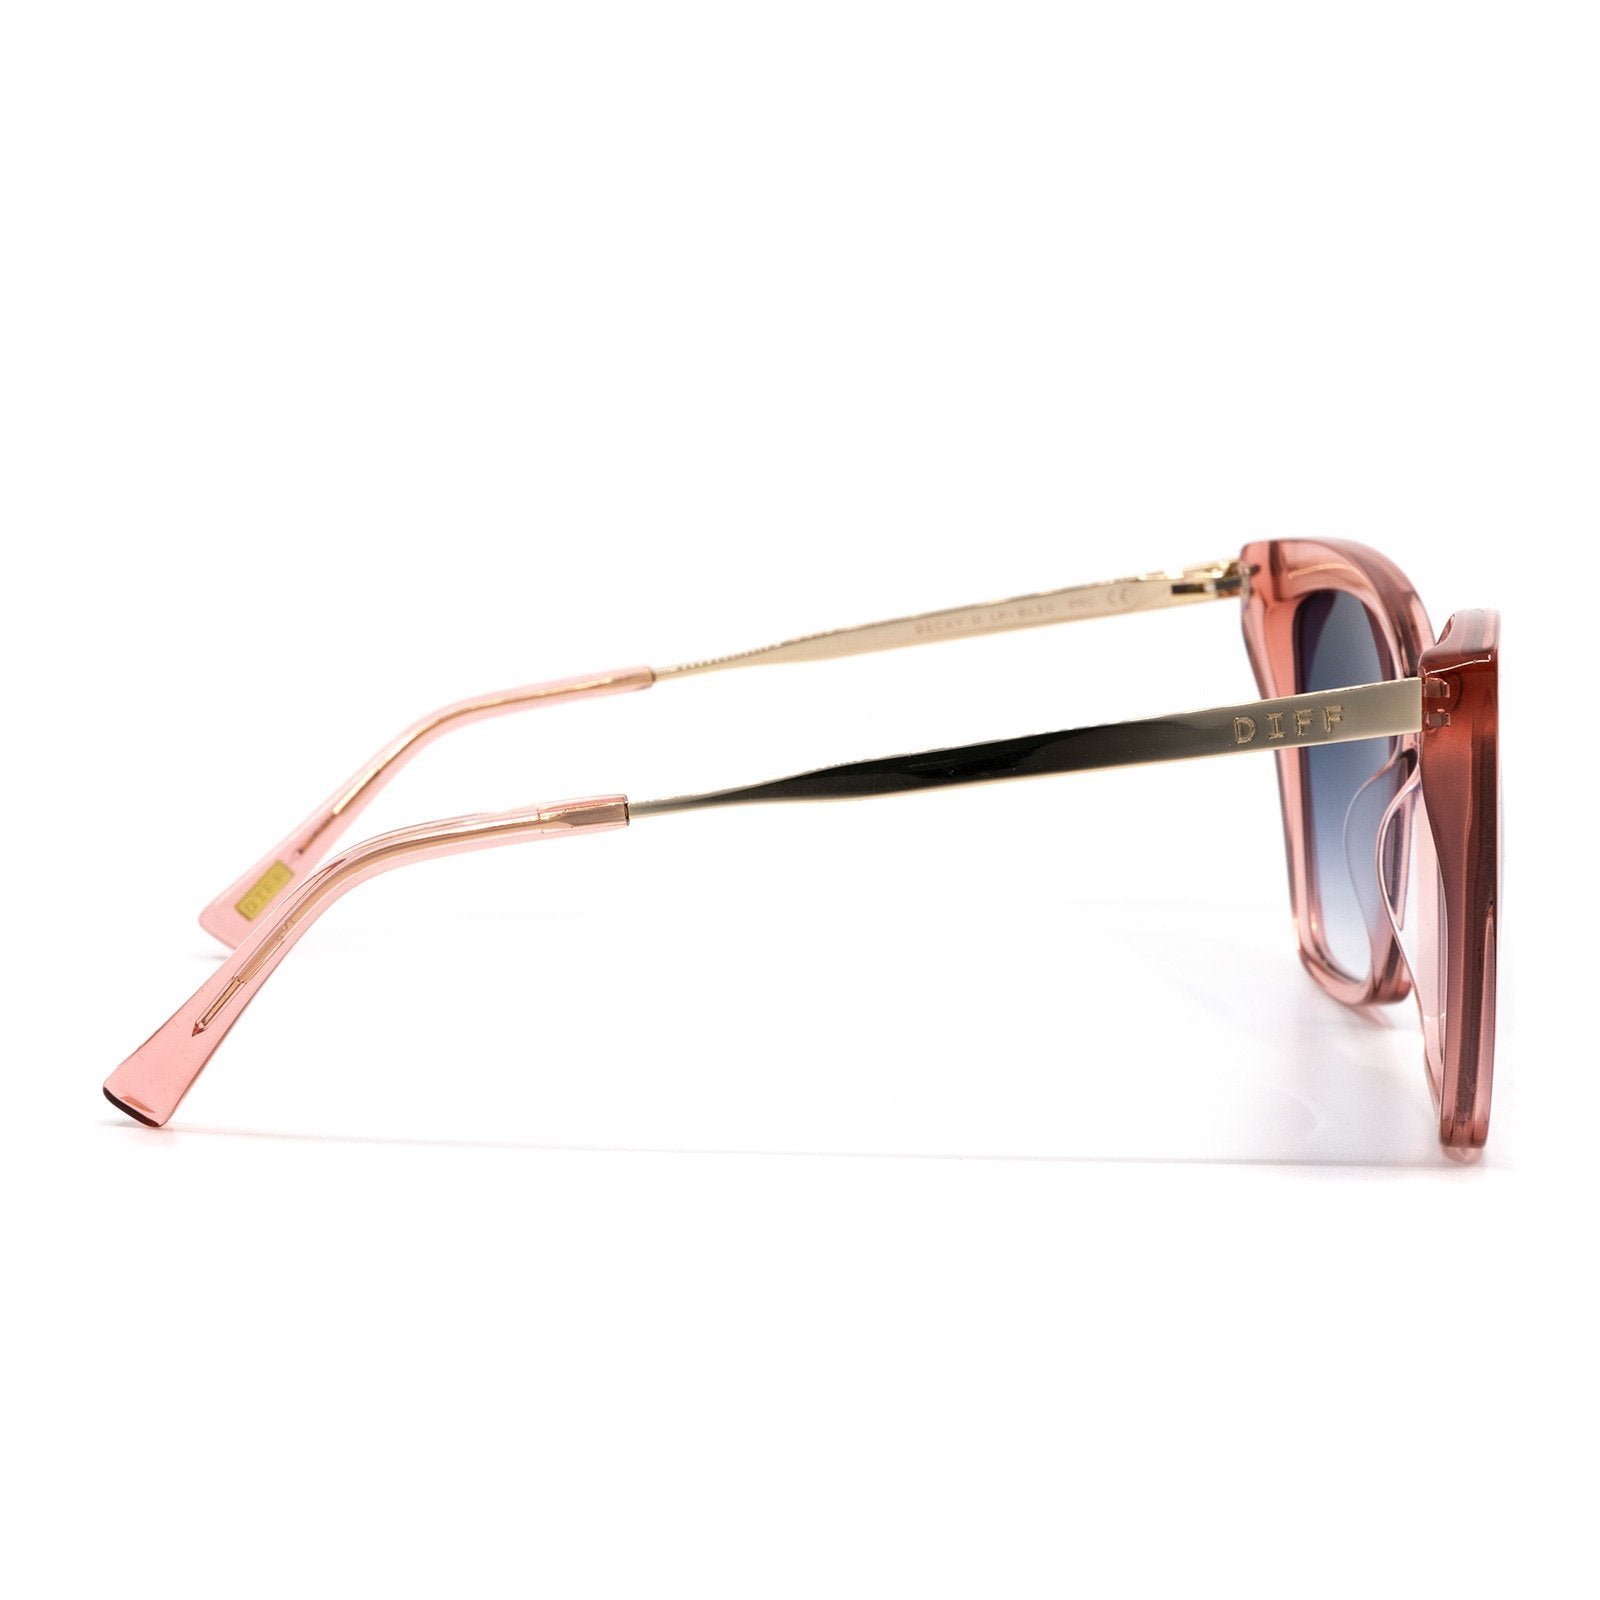 BECKY II sunglasses with light pink crystal frames and blu gradient lens side view